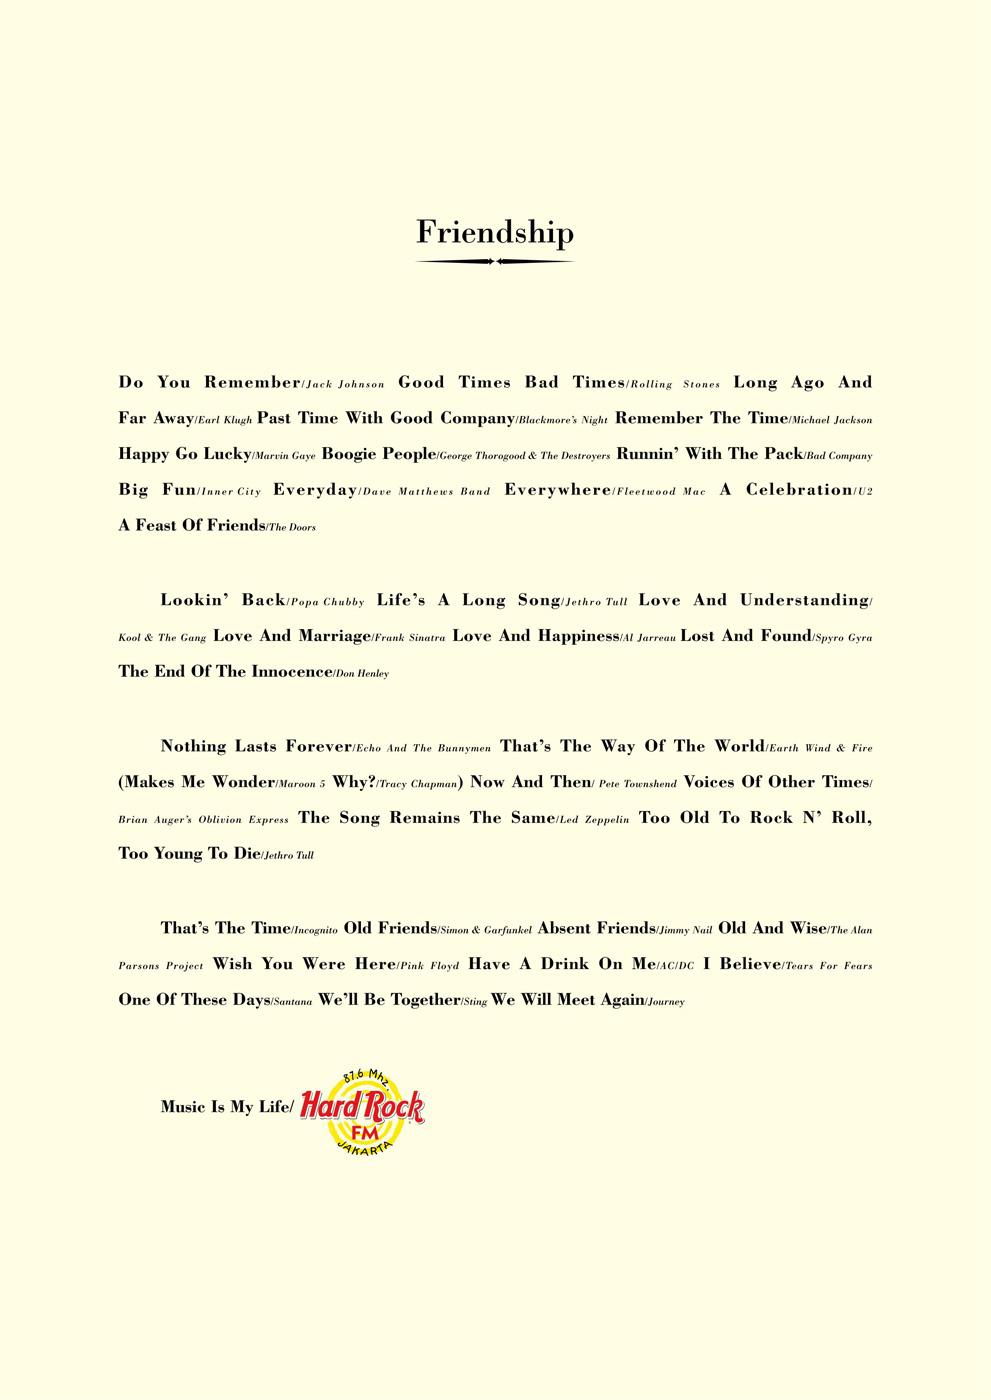 Hard Rock FM Print Ad -  Friendship